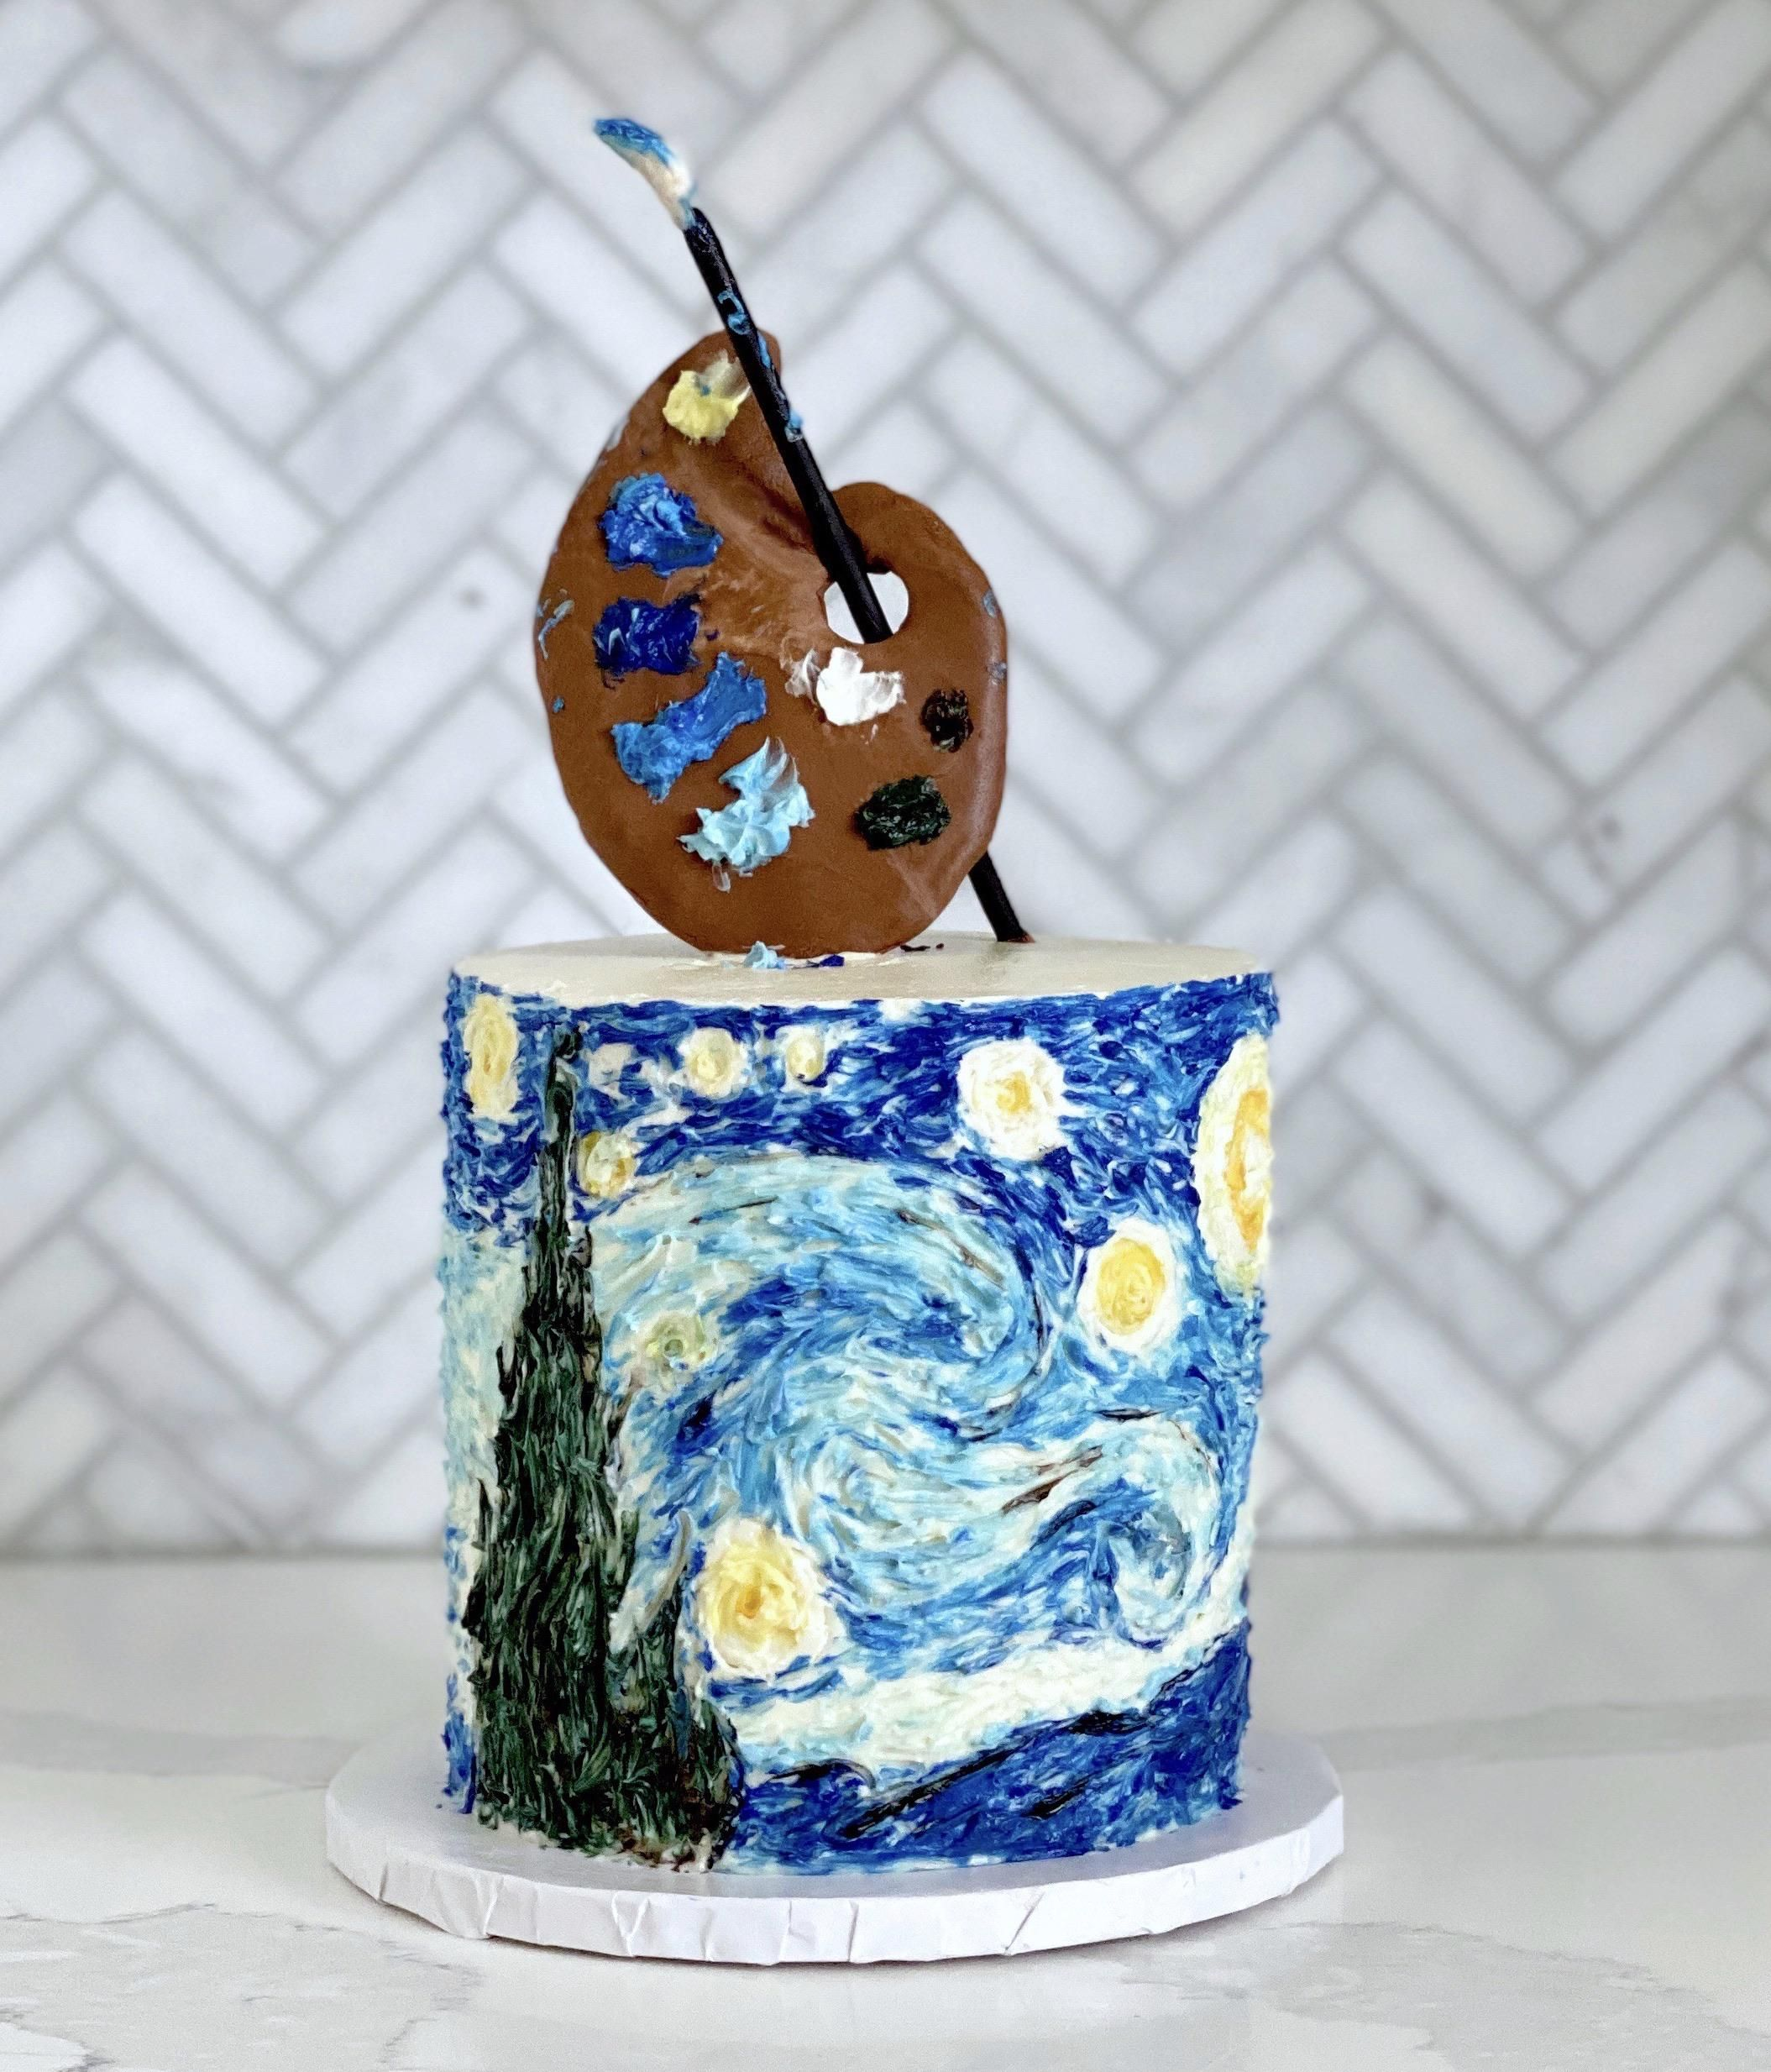 Starry Night buttercream cake, let me know your th